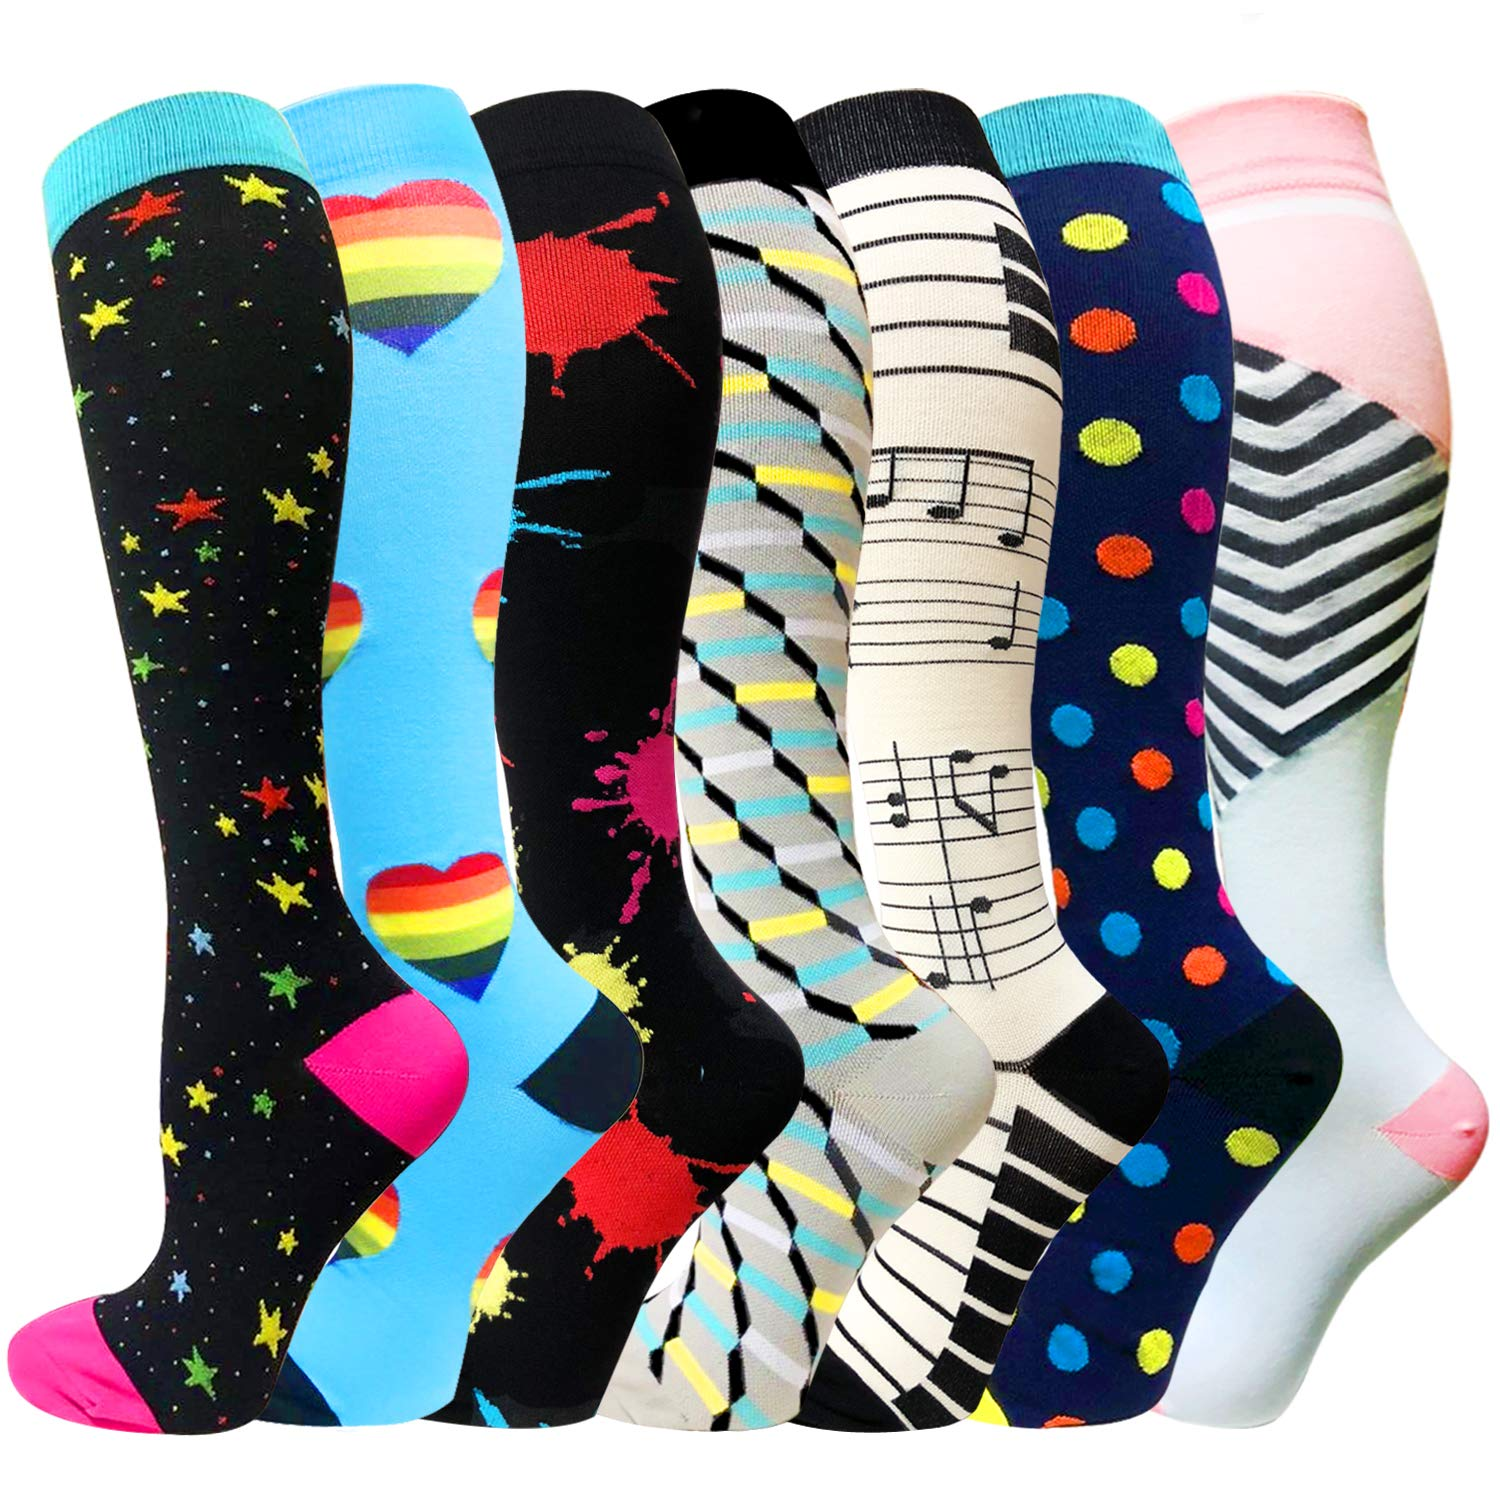 1/3/6 Pairs Compression Socks for Women&Men (20-30mmHg) -Best for Running, Travel,Cycling,Pregnant,Nurse, Edema (Large/X-Large, Multicoloured 28)